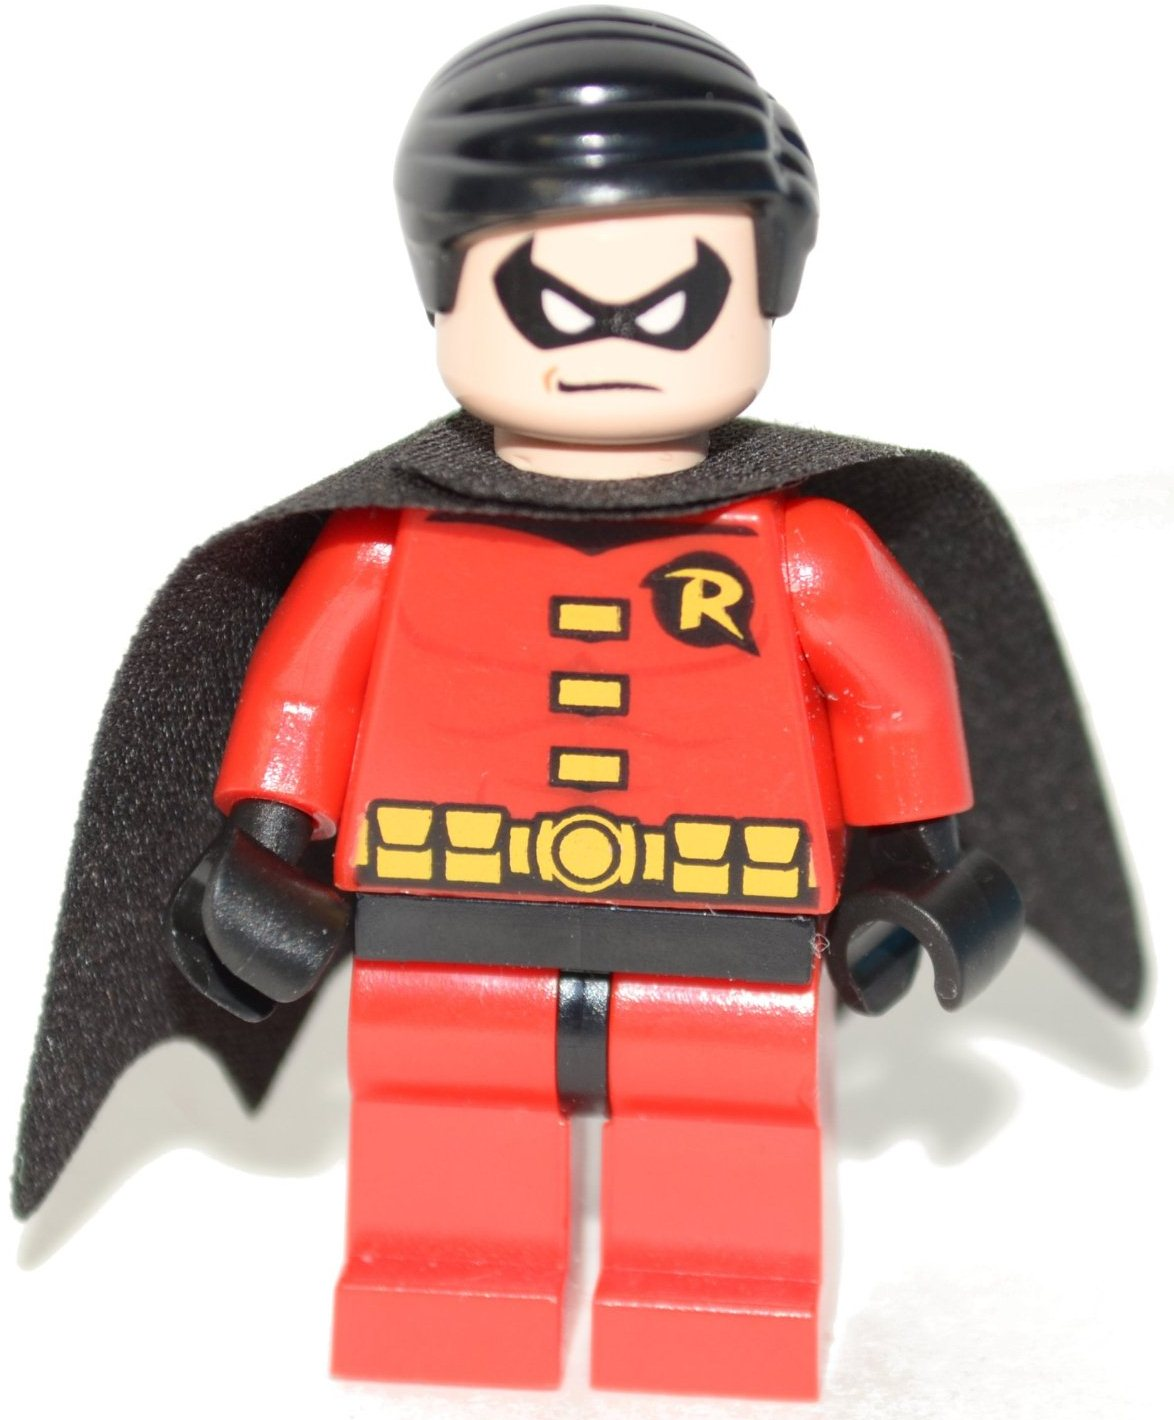 Image - Robin 2012.jpg - Brickipedia, the LEGO Wiki